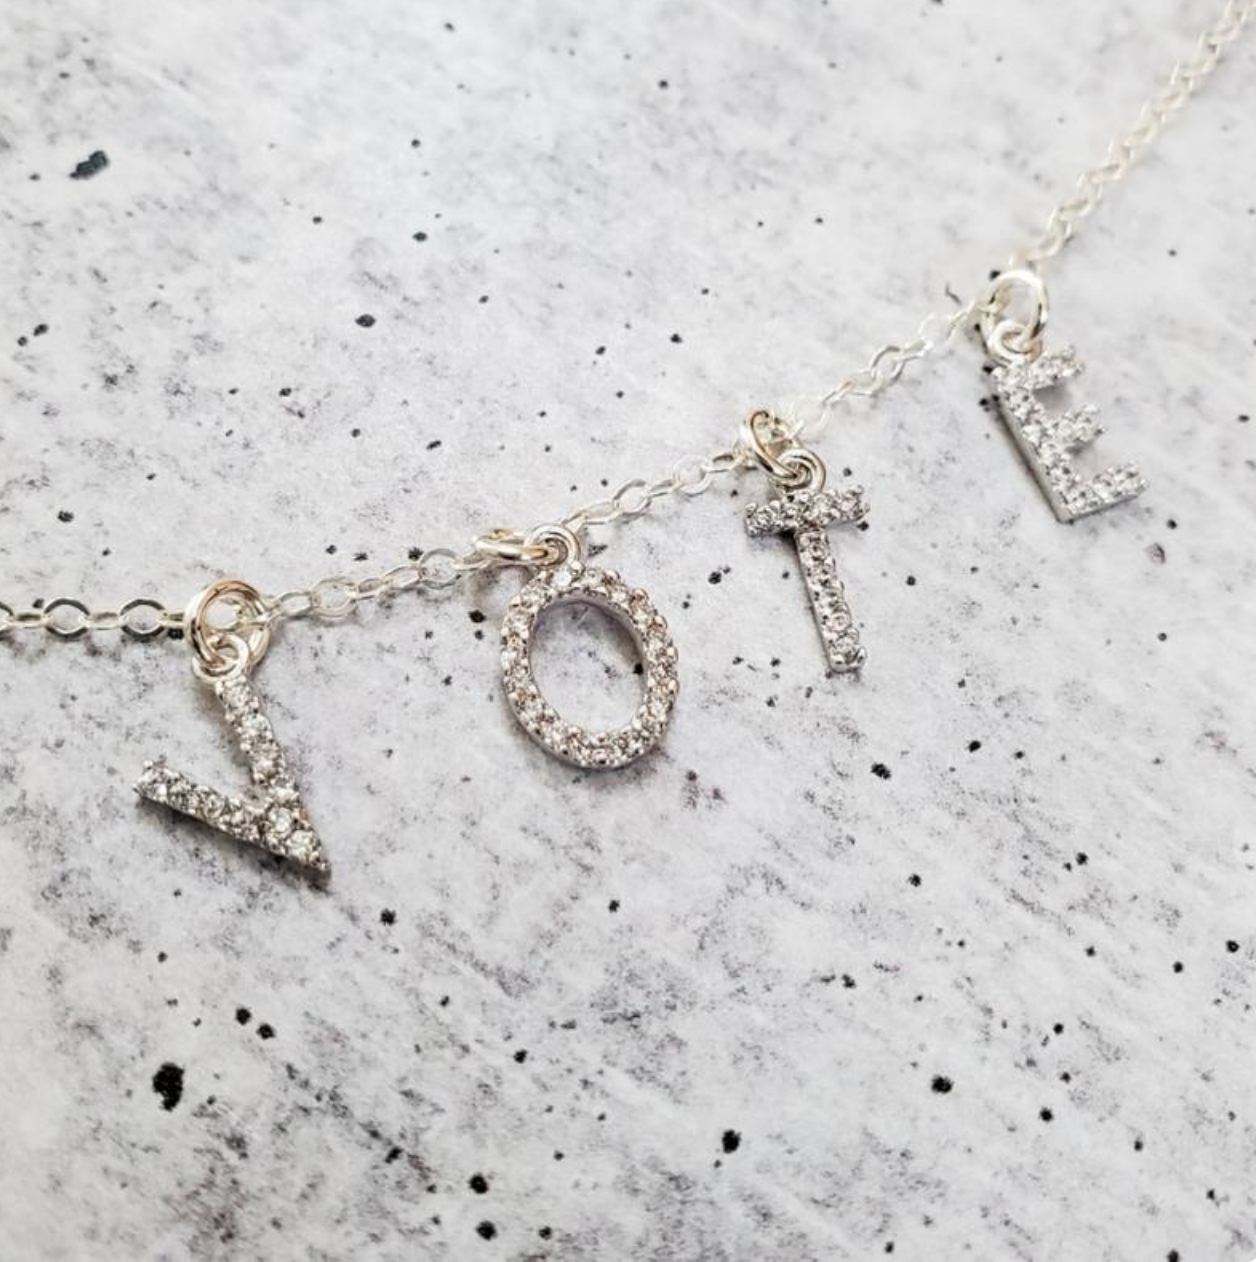 Rockaway Gypsea VOTE Necklace-Silver/Crystal Letters - FINAL SALE